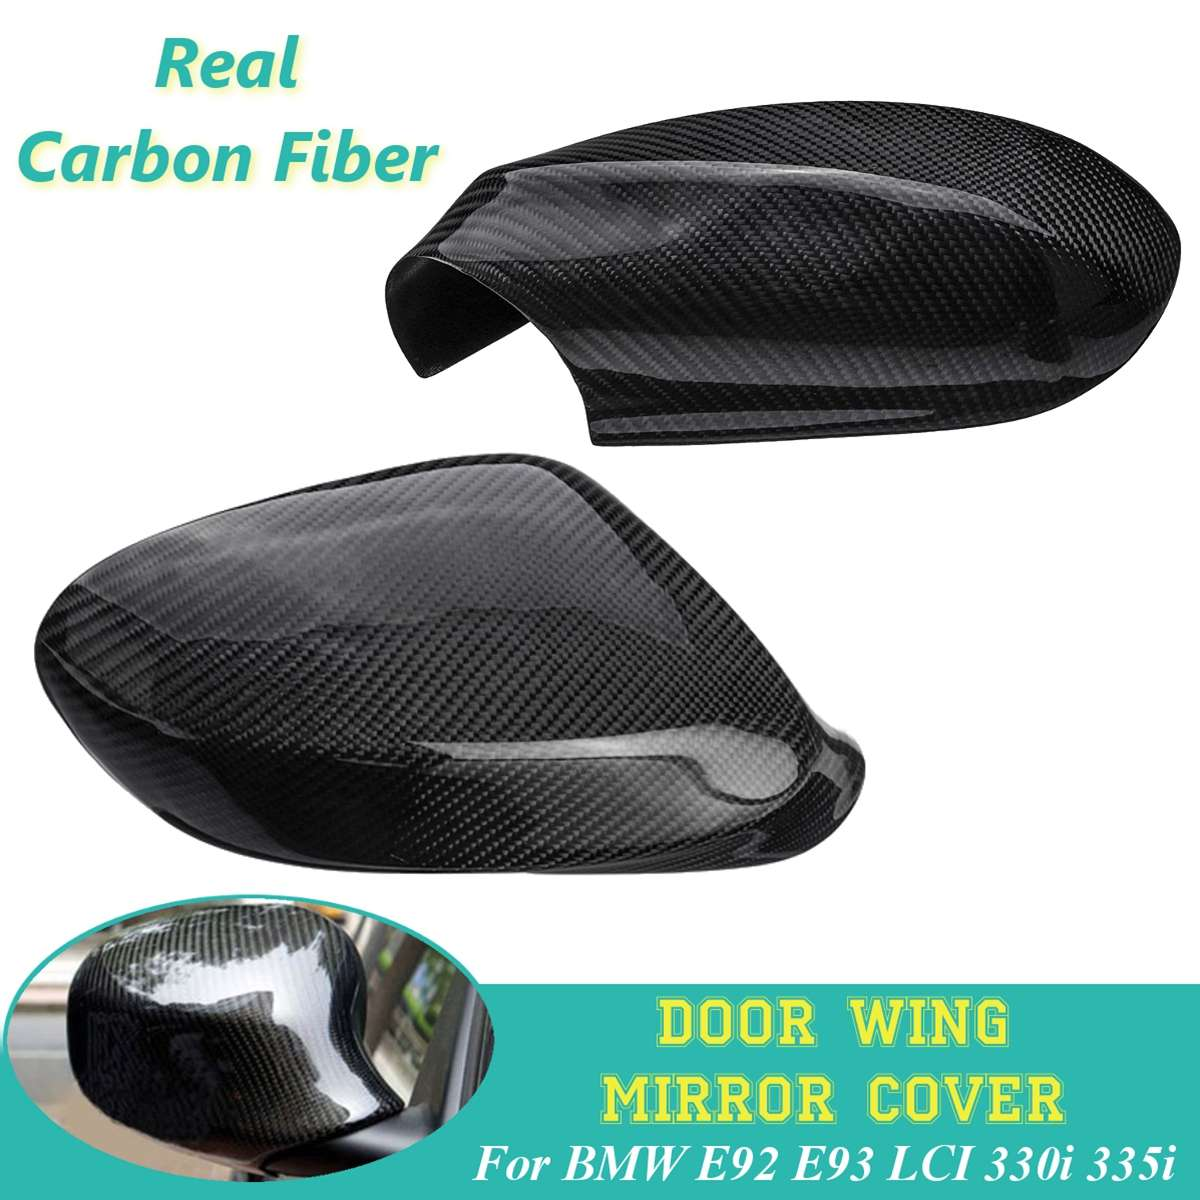 Mirror Cover Cap For BMW E92 E93 LCI 325i 328i 335i 2009 2010 2011 2012 Black Real Carbon Fiber Auto Car Rearview Side Wing